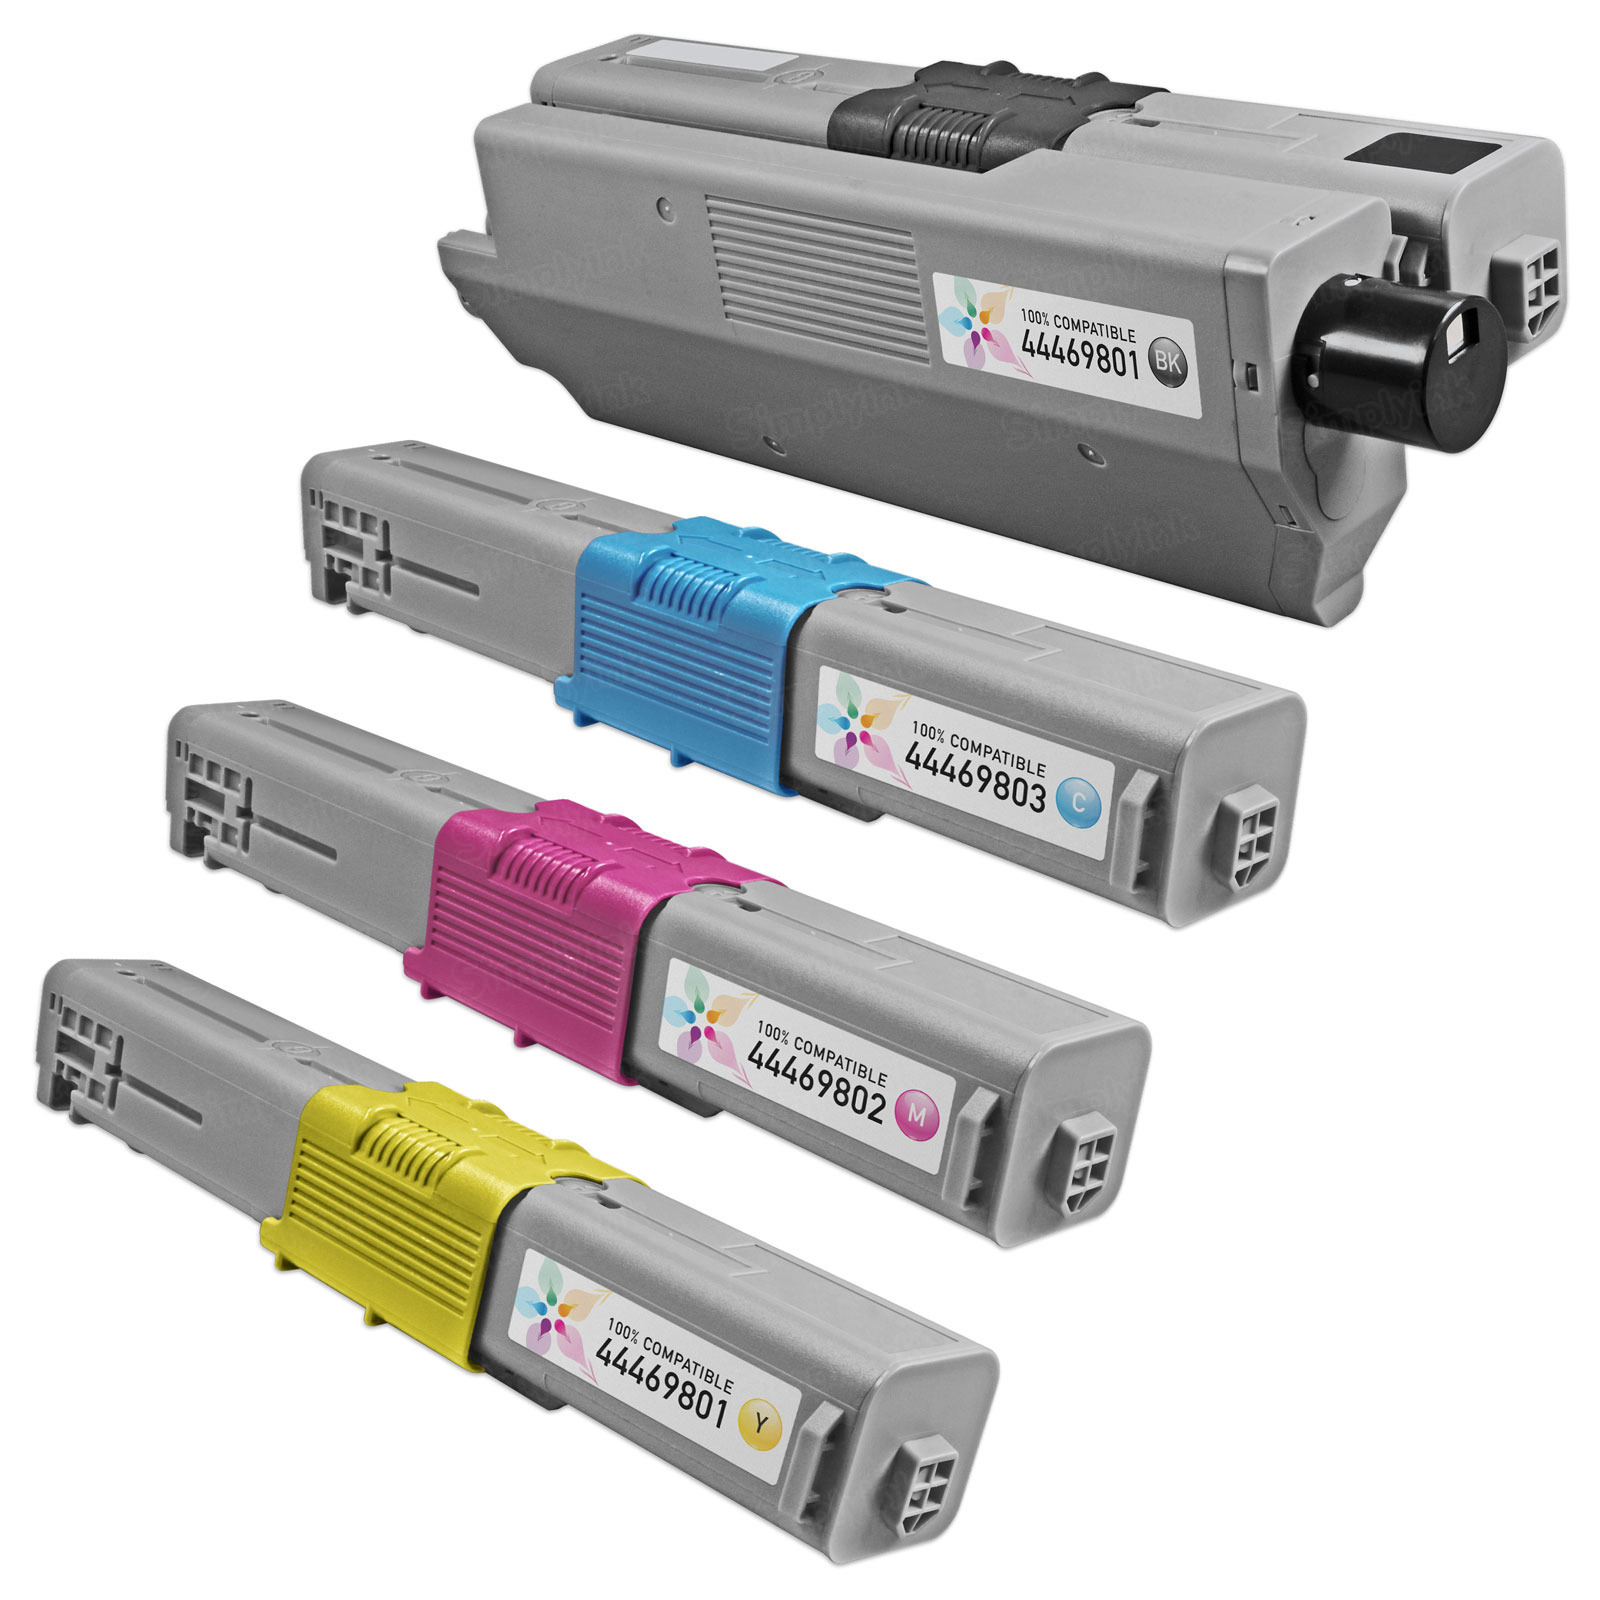 Compatible Type C17 Toner Set for Okidata - Black, Cyan, Magenta, Yellow